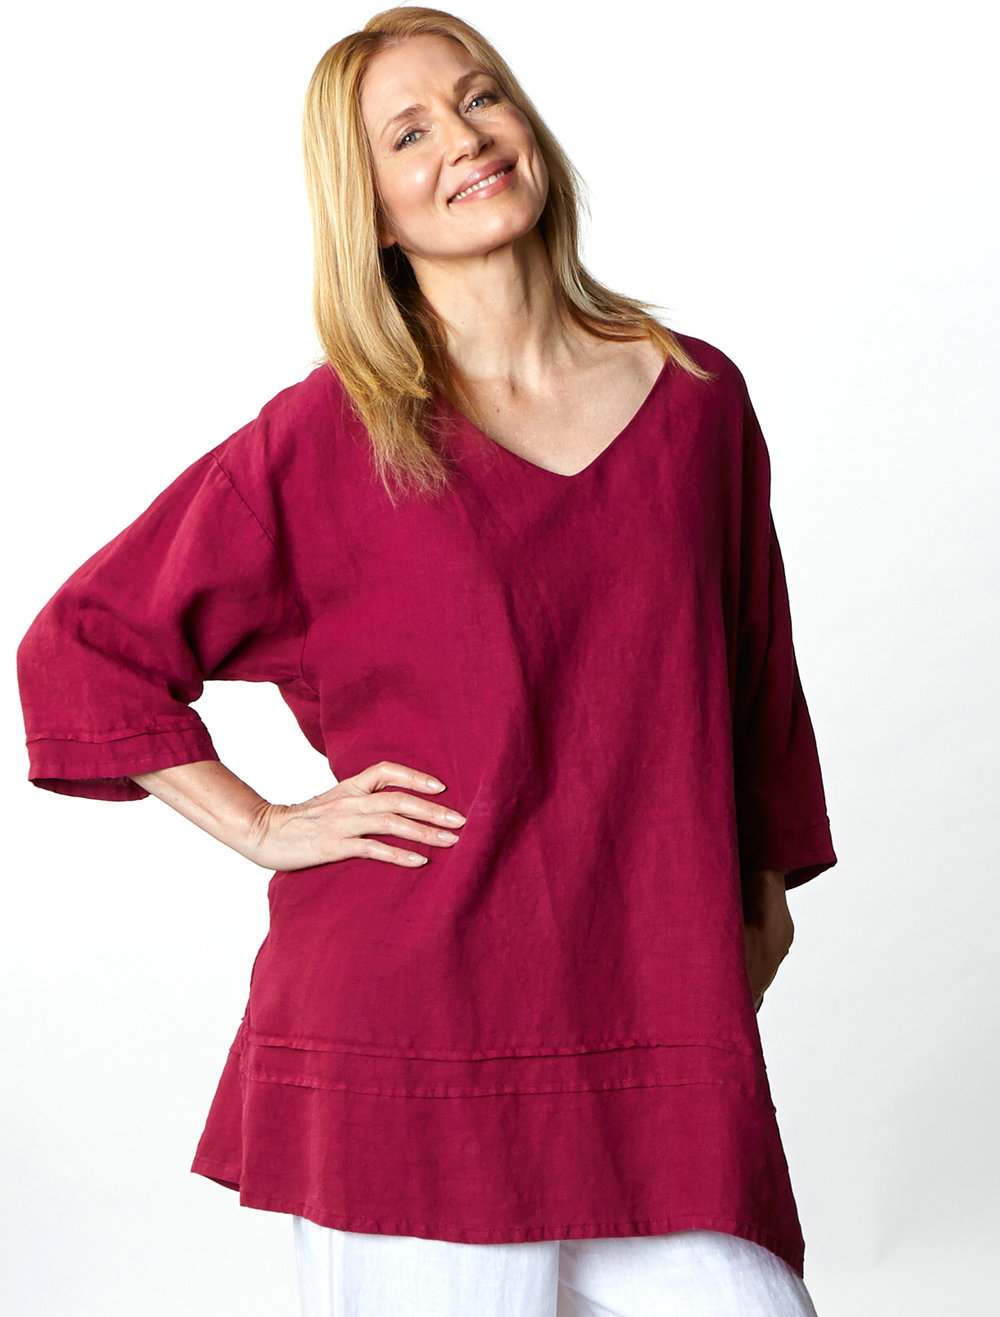 Jude Tunic in Raspberry, Oliver Pant in White Light Linen